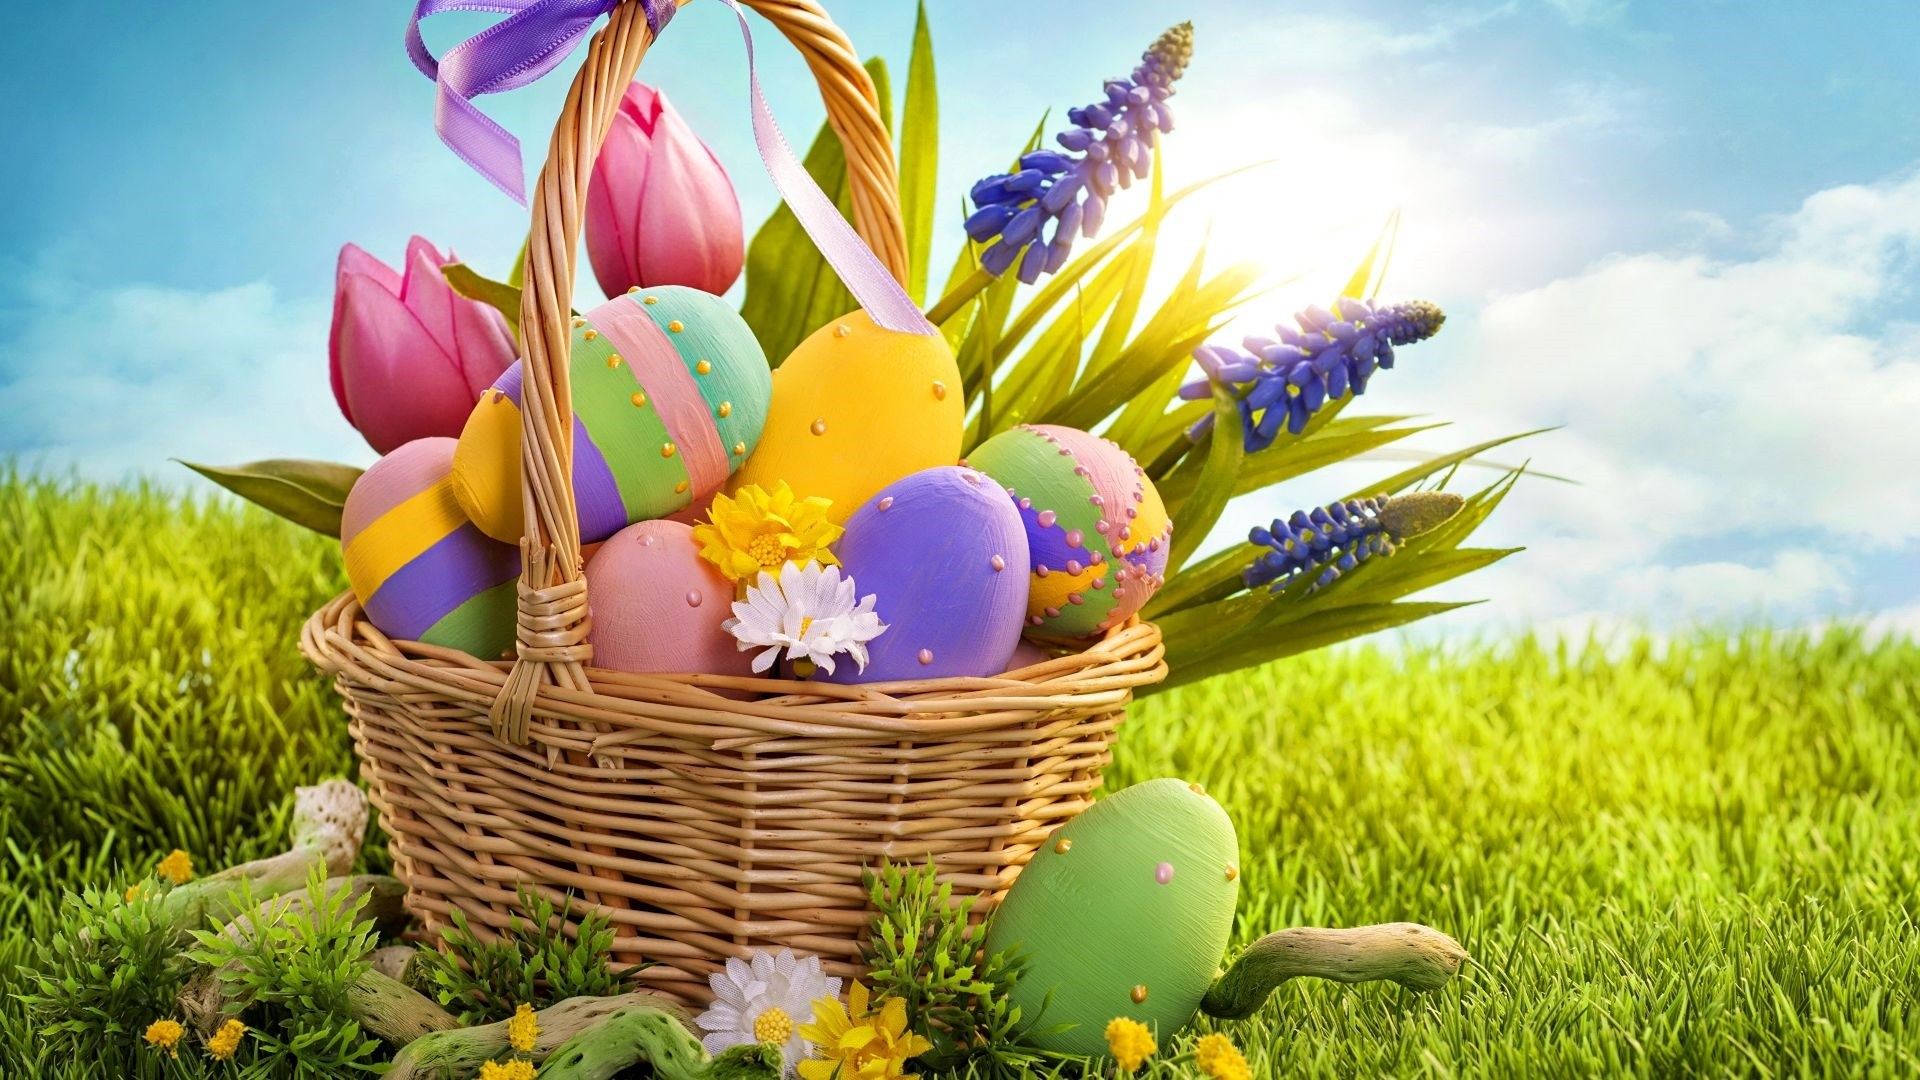 Easter 2020 Wallpaper Desktop